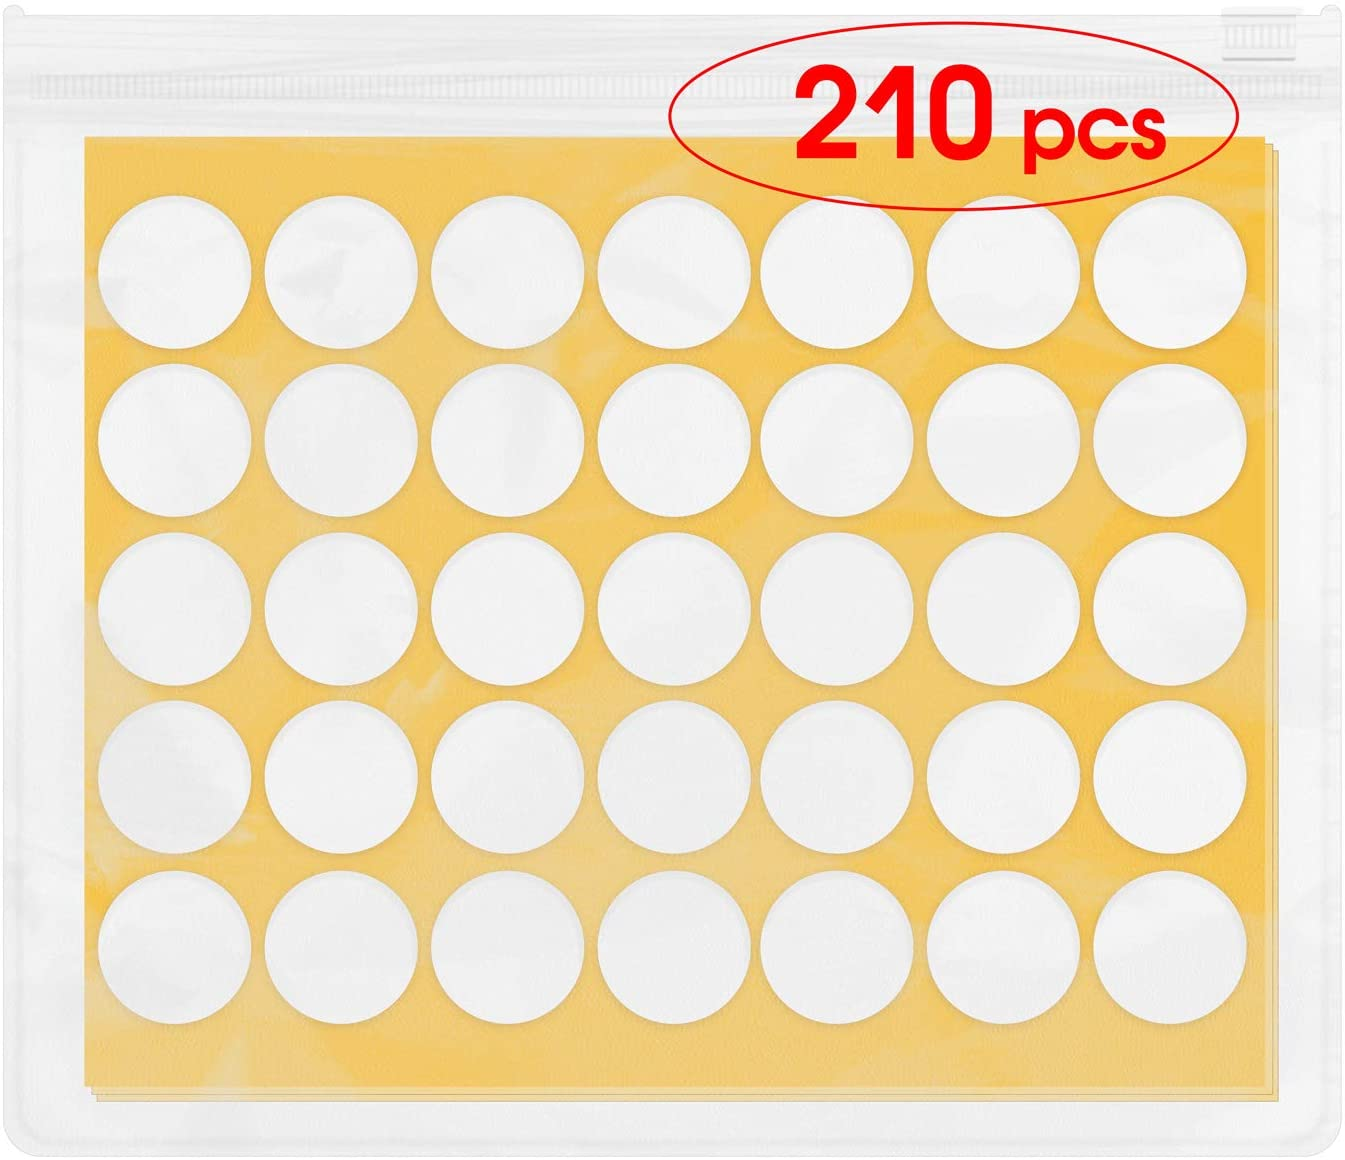 Candle Wick Stickers - LELETVN Candle Making Supplies CWS019210 - High Temperature Resistant - Strong Tensile Force - Tear Off Without Mark- 210 pcs